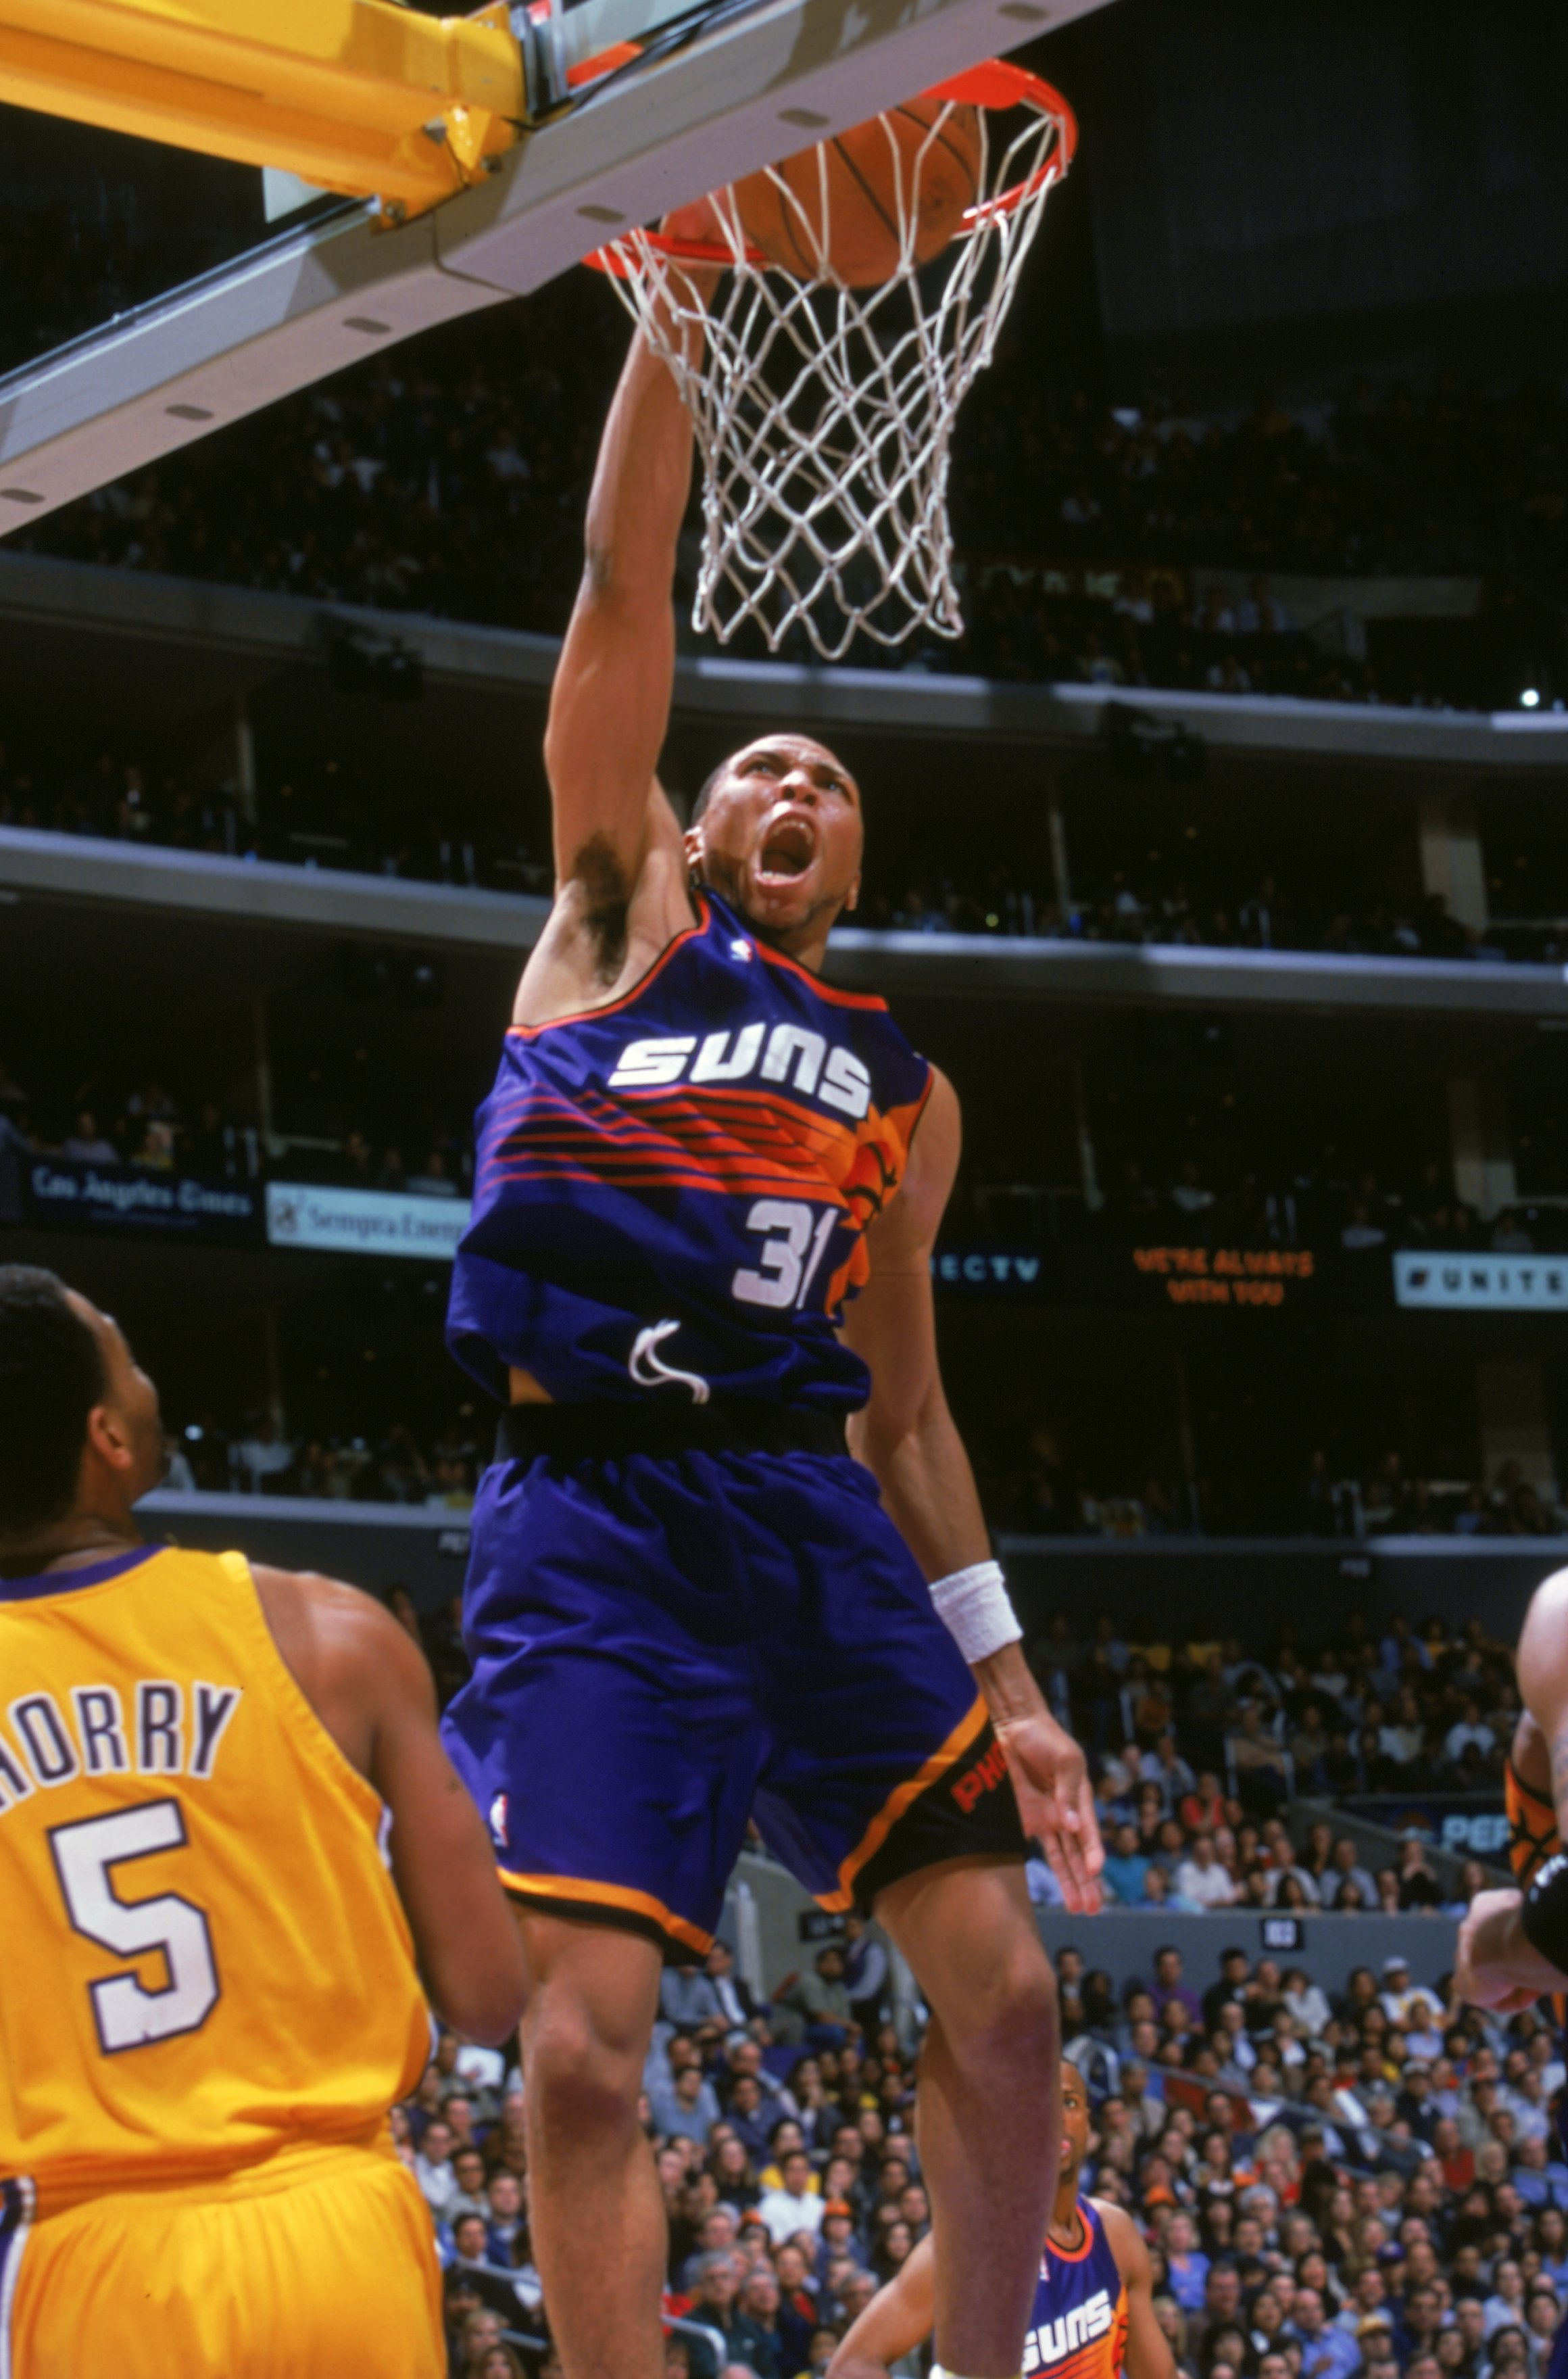 24 Mar 2000: Shawn Marion #31 of the Phoenix Suns makes a slam dunk during a game against the Los Angeles Lakers at the Staples Center in Los Angeles, California. The Lakers defeated the Suns 109-101.       Mandatory Credit: Stephen Dunn  /Allsport